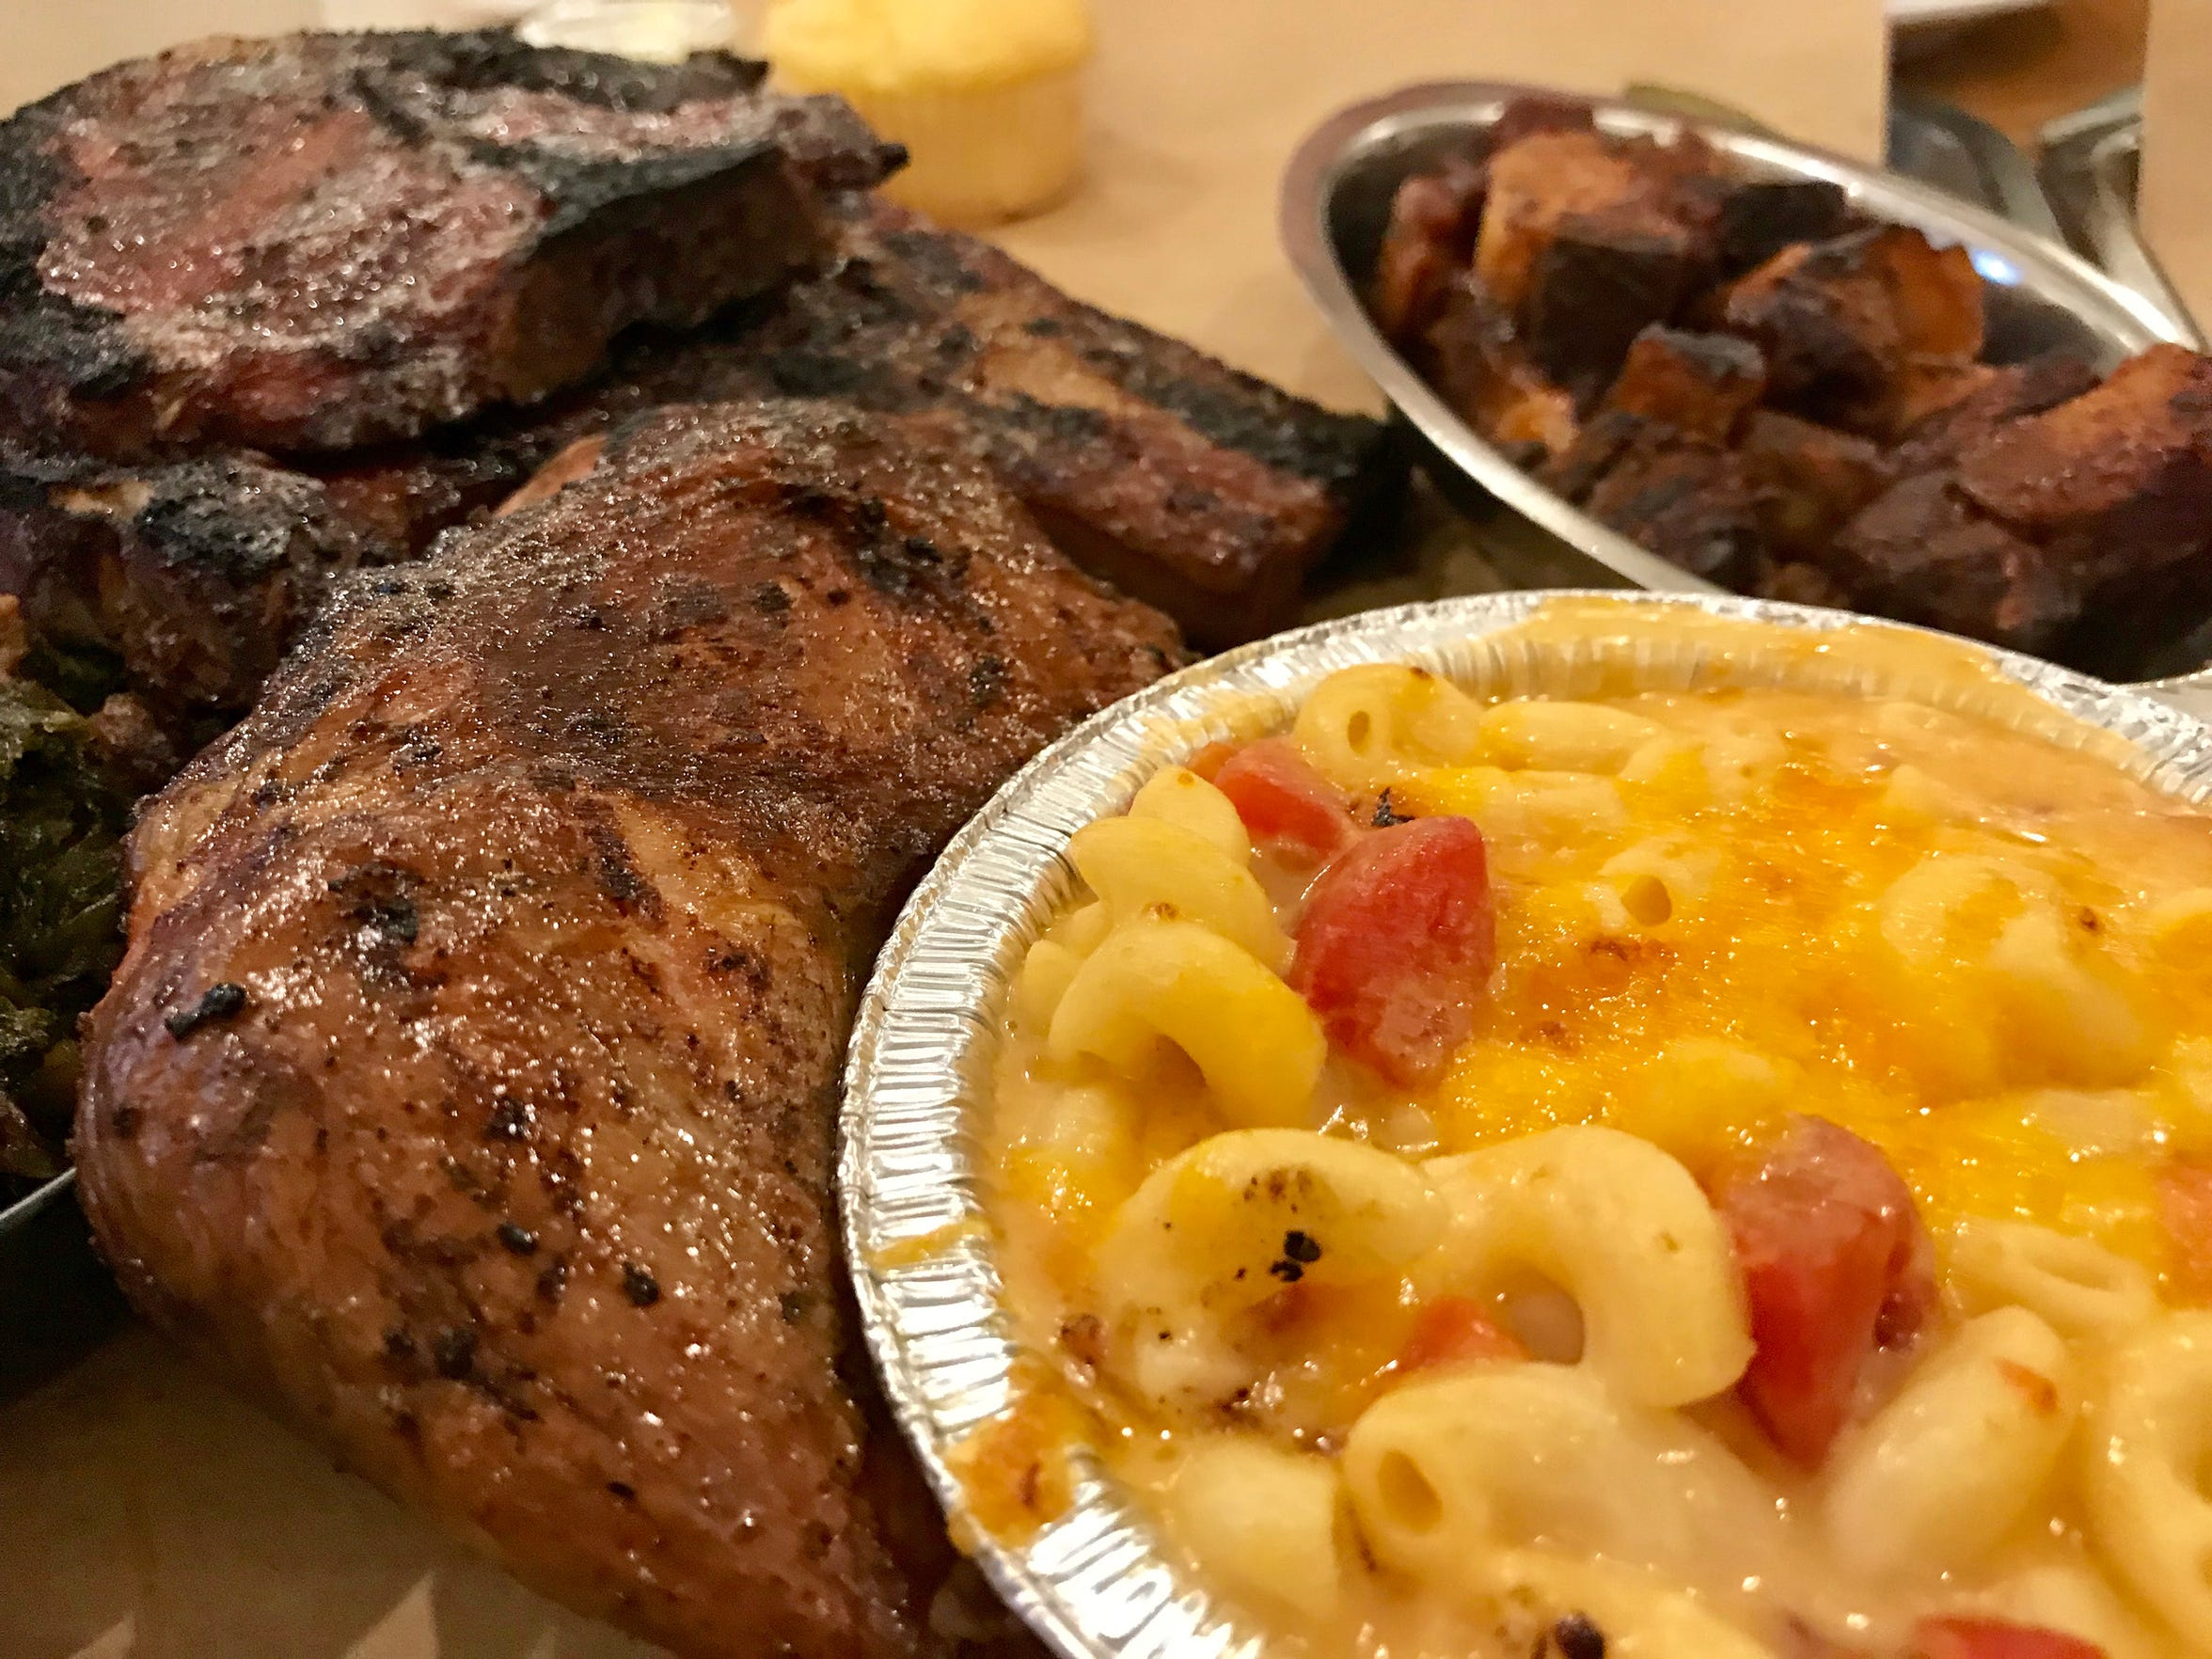 """Iron Grate BBQ Co., 4125 S. Howell Ave., serves a variety of wood-smoked meats as well as side dishes that involve smoke in some way, such as (from right) mac and cheese with smoked tomato, chicken leg quarter and a special, the """"pile o' pork chops."""""""